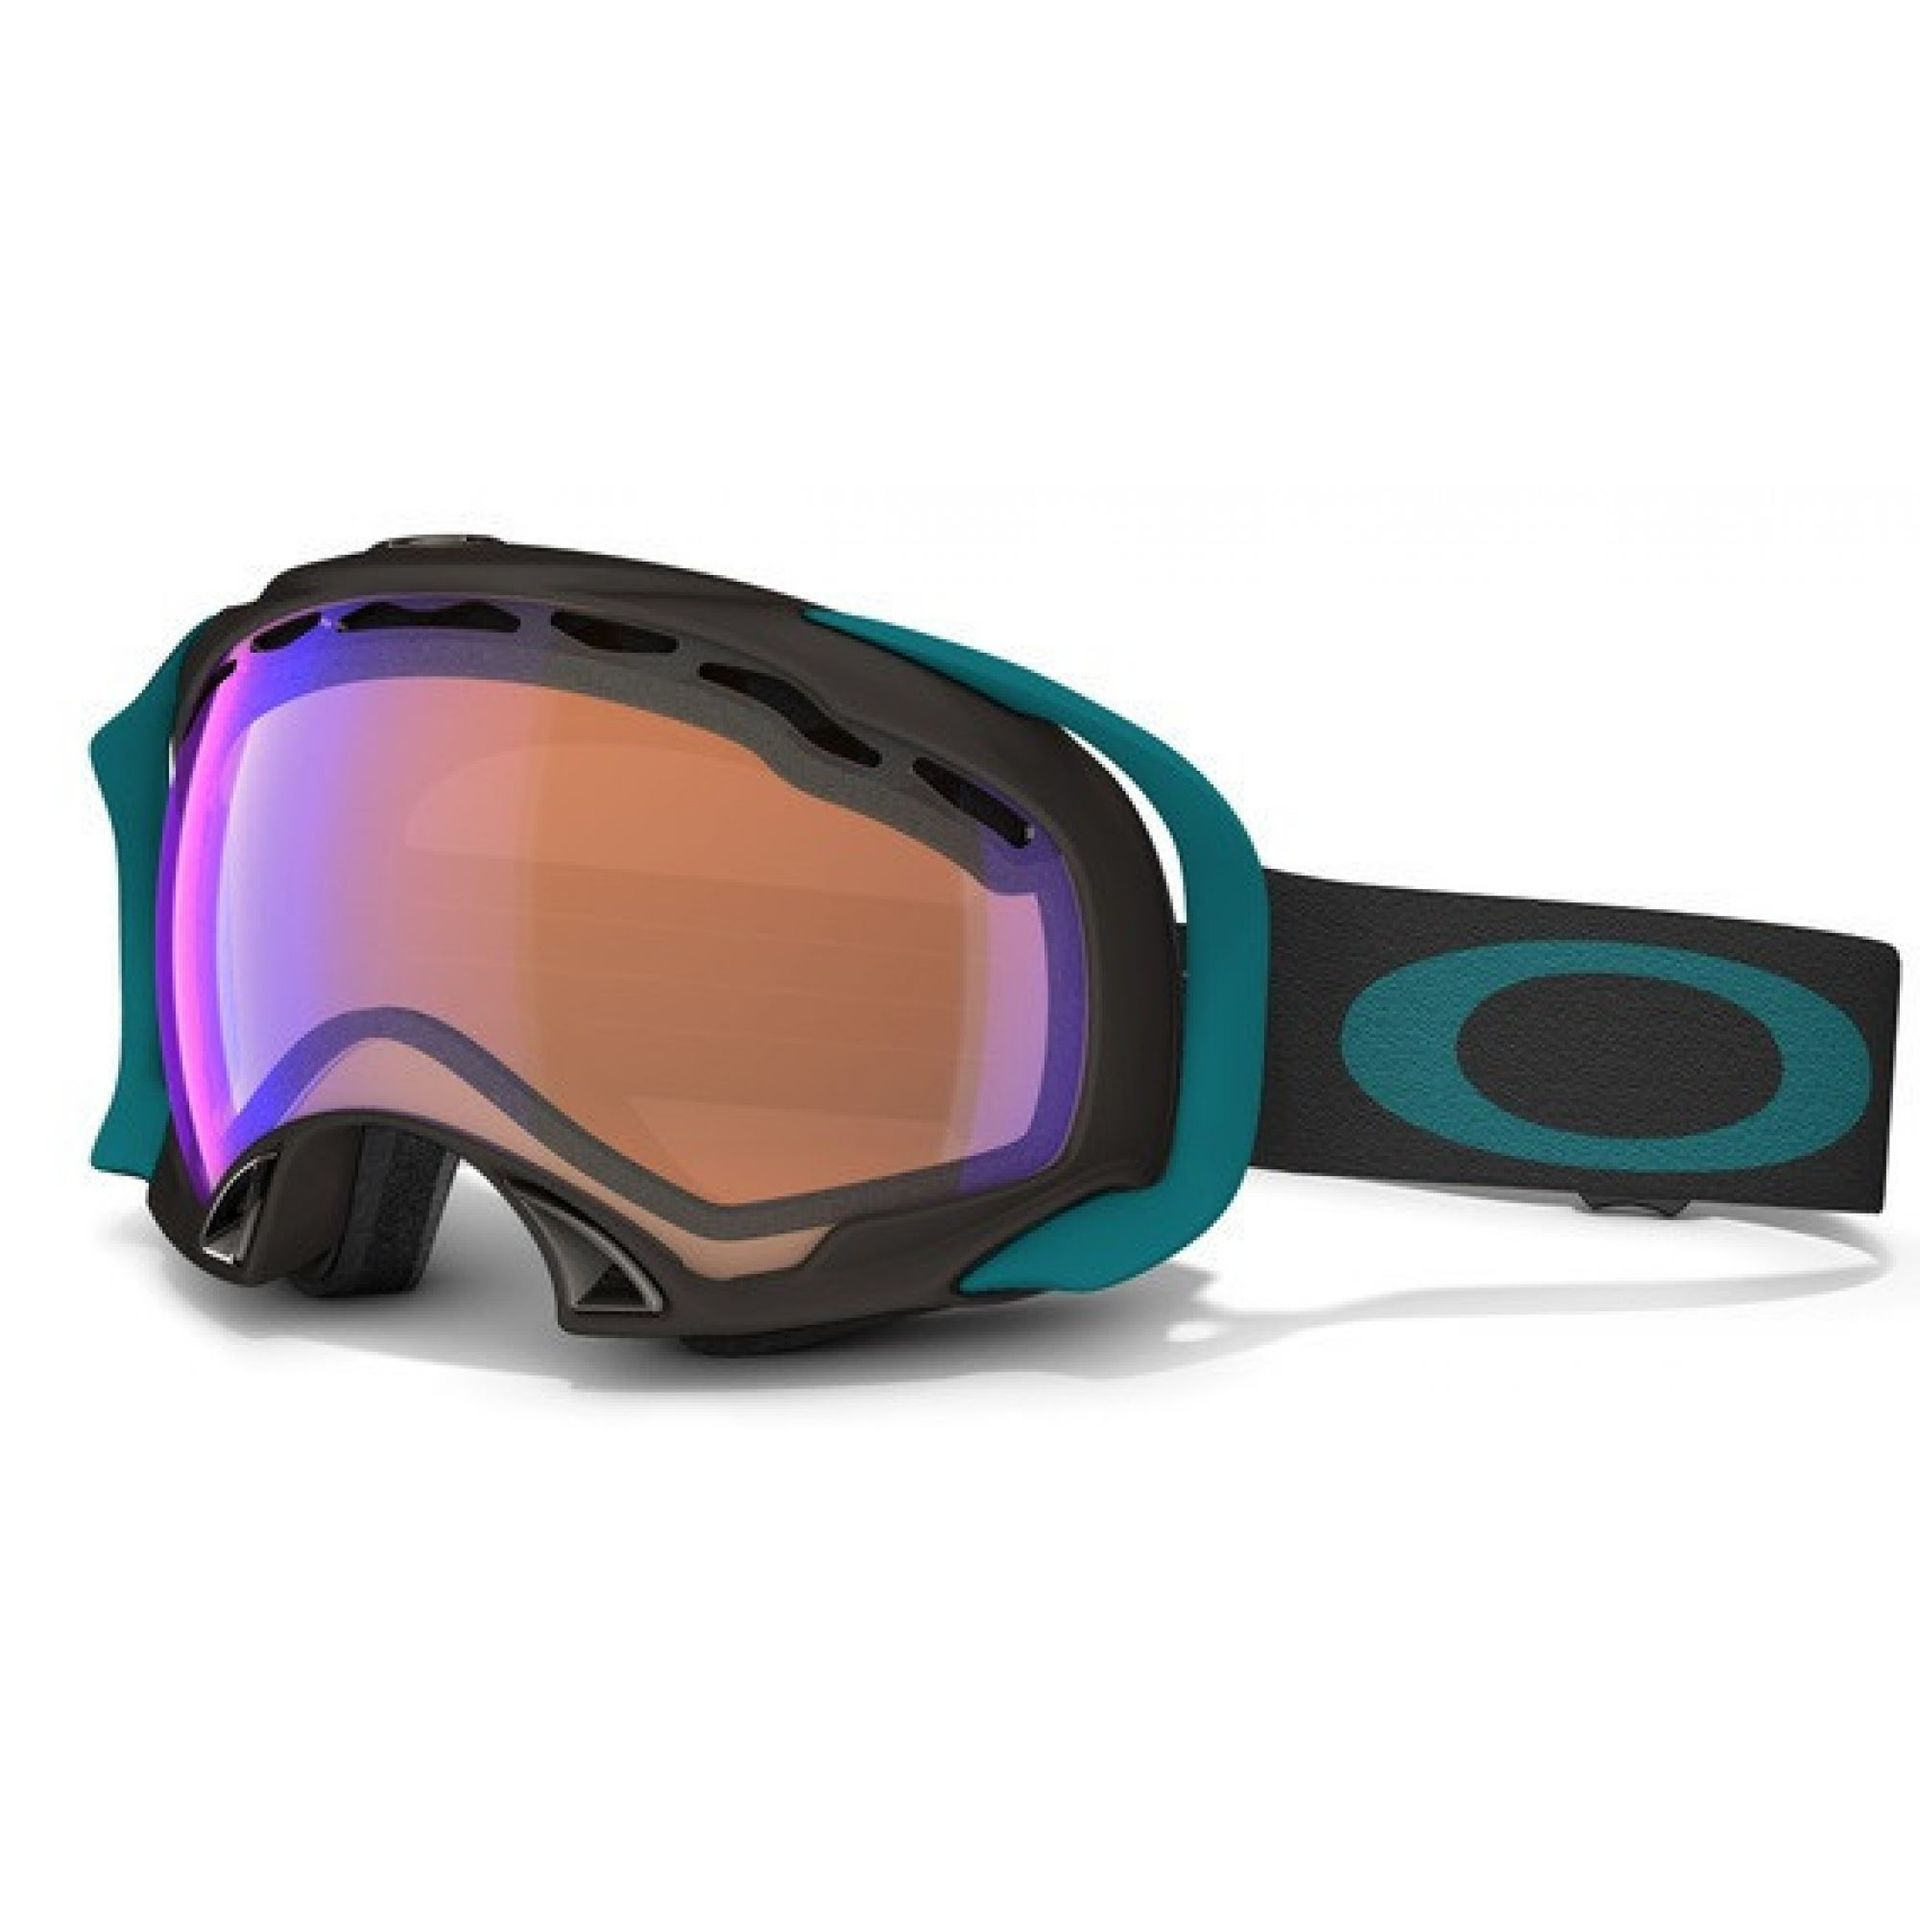 GOGLE OAKLEY SPLICE GUNMETAL|BLUE IRIDIUM 1